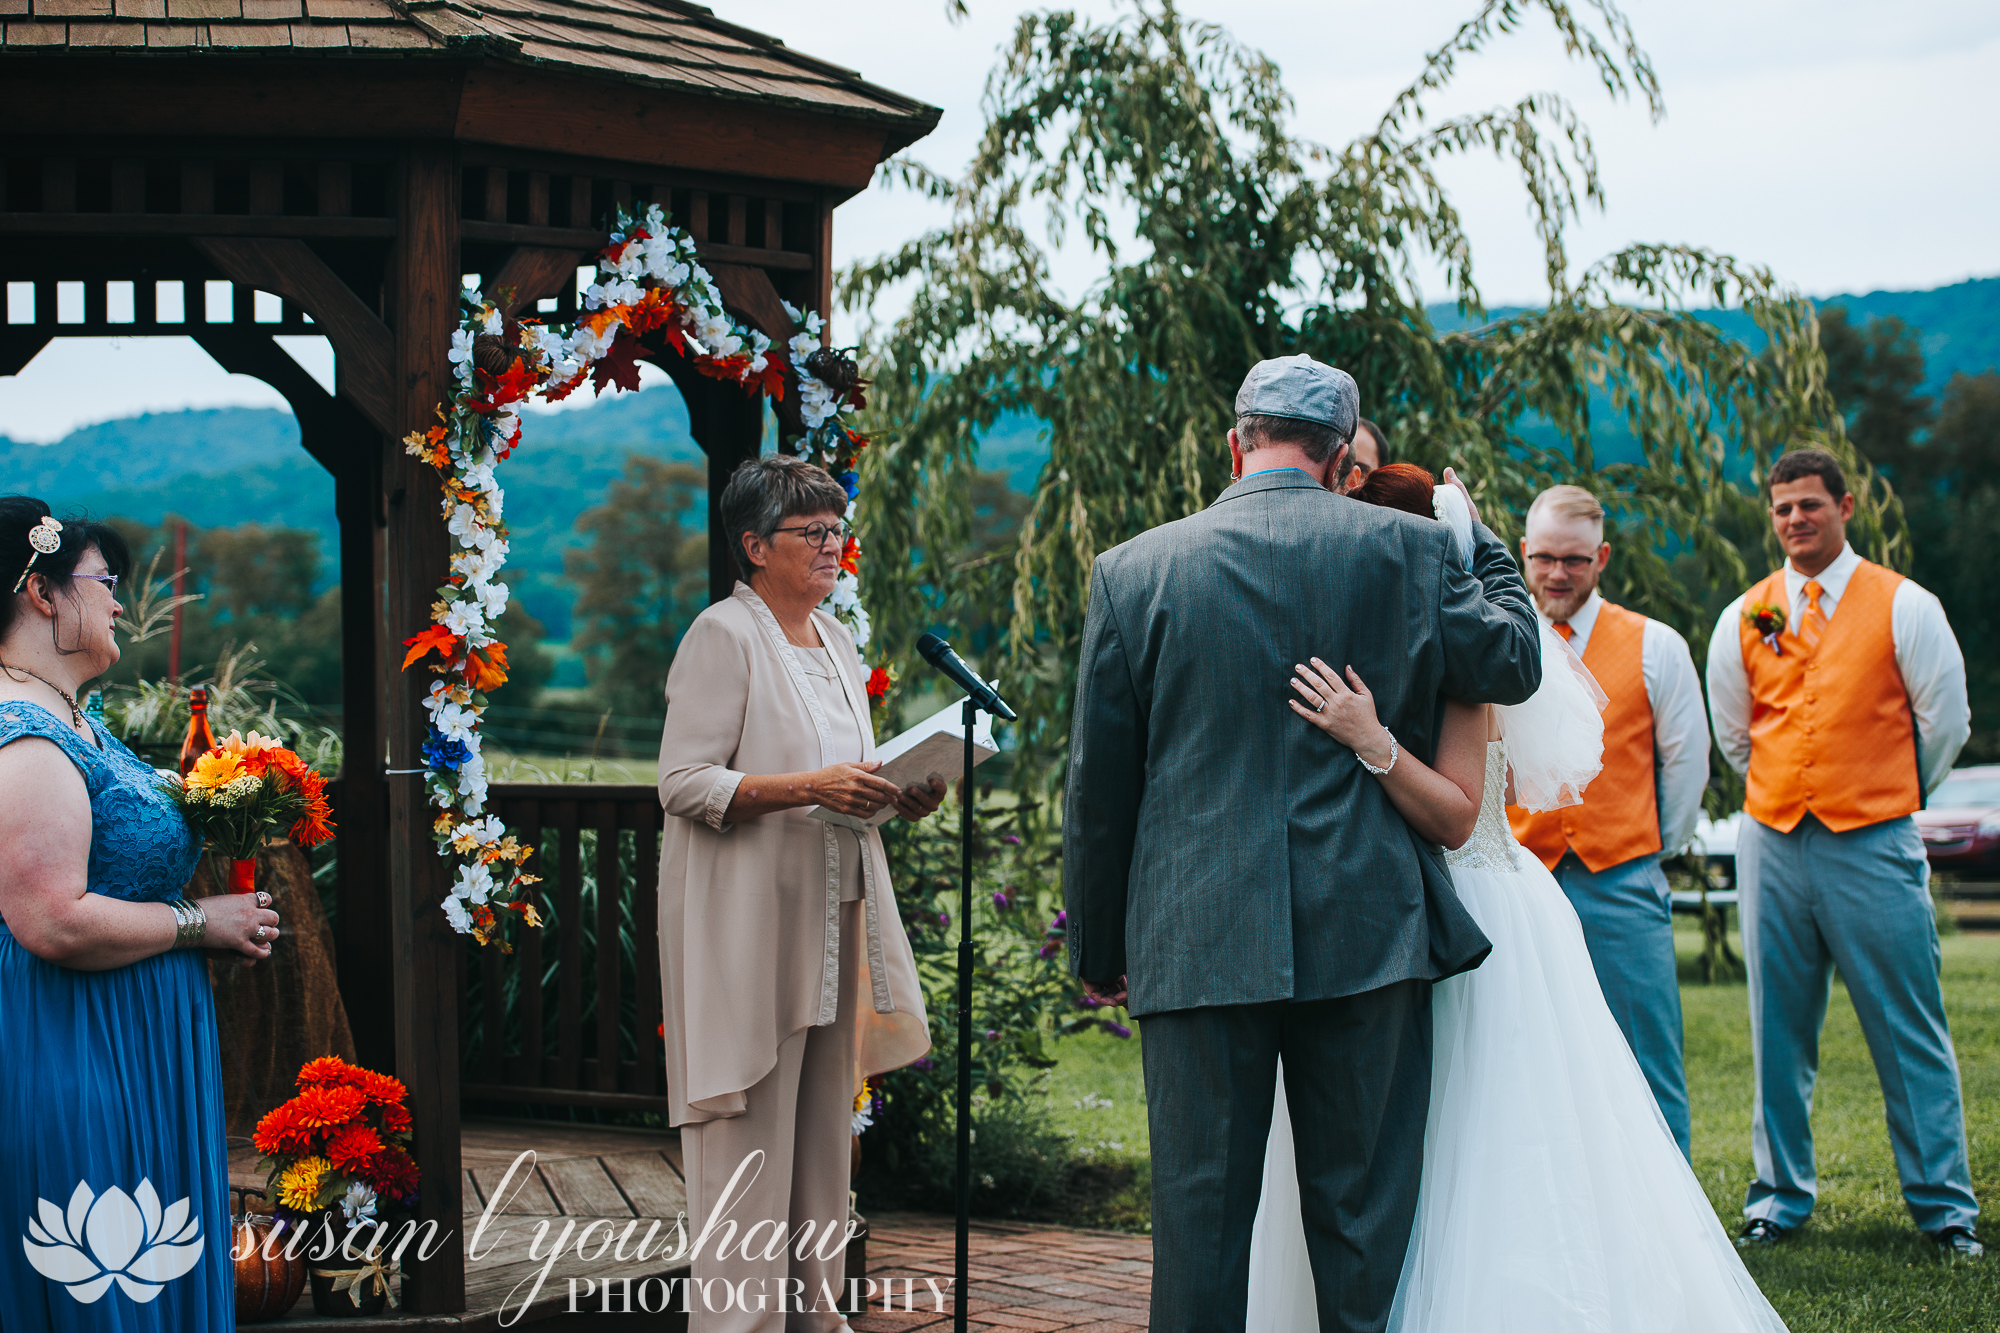 BLOG Kelly and DJ Roberts 08-25-2018 SLY Photography LLC-43.jpg